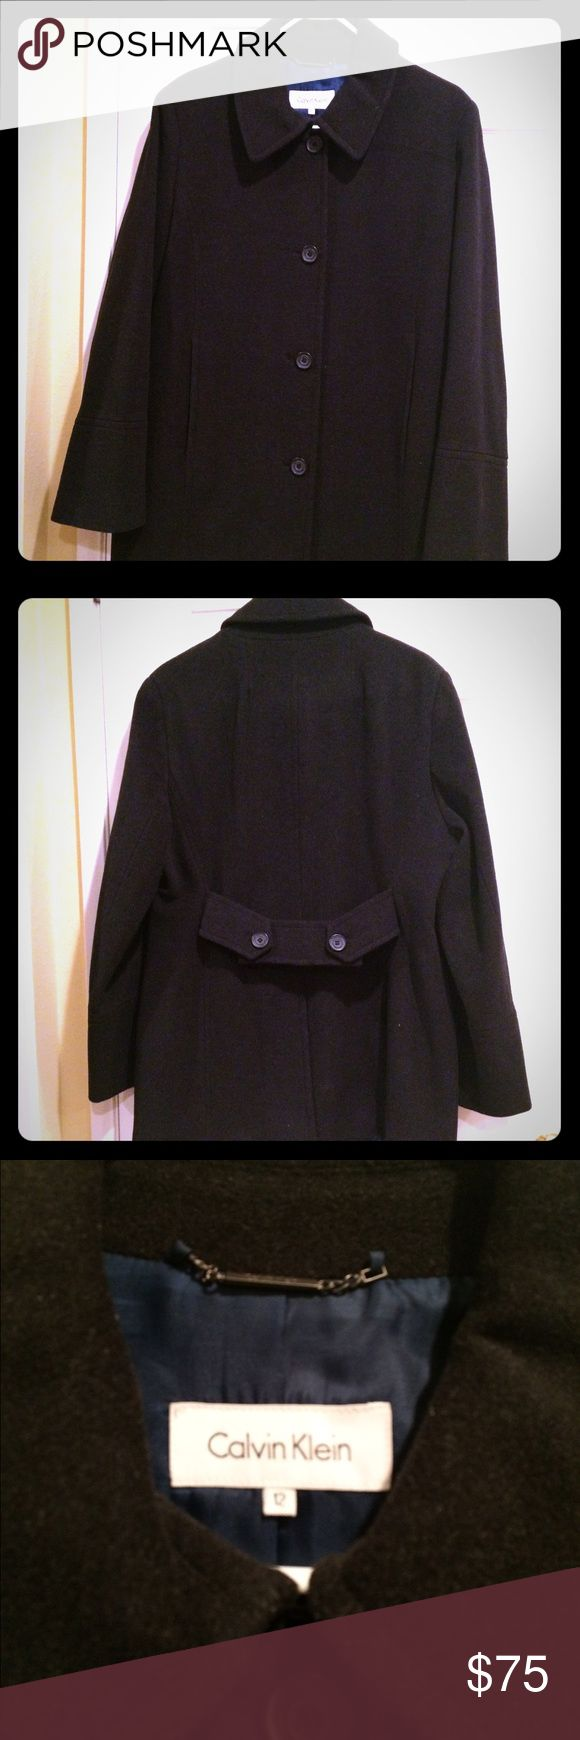 Calvin Klein Pea Coat Lightly worn black pea coat. Perfect for chilly days ❄️🌦🌨 Smoke free & pet free home. Calvin Klein Jackets & Coats Pea Coats